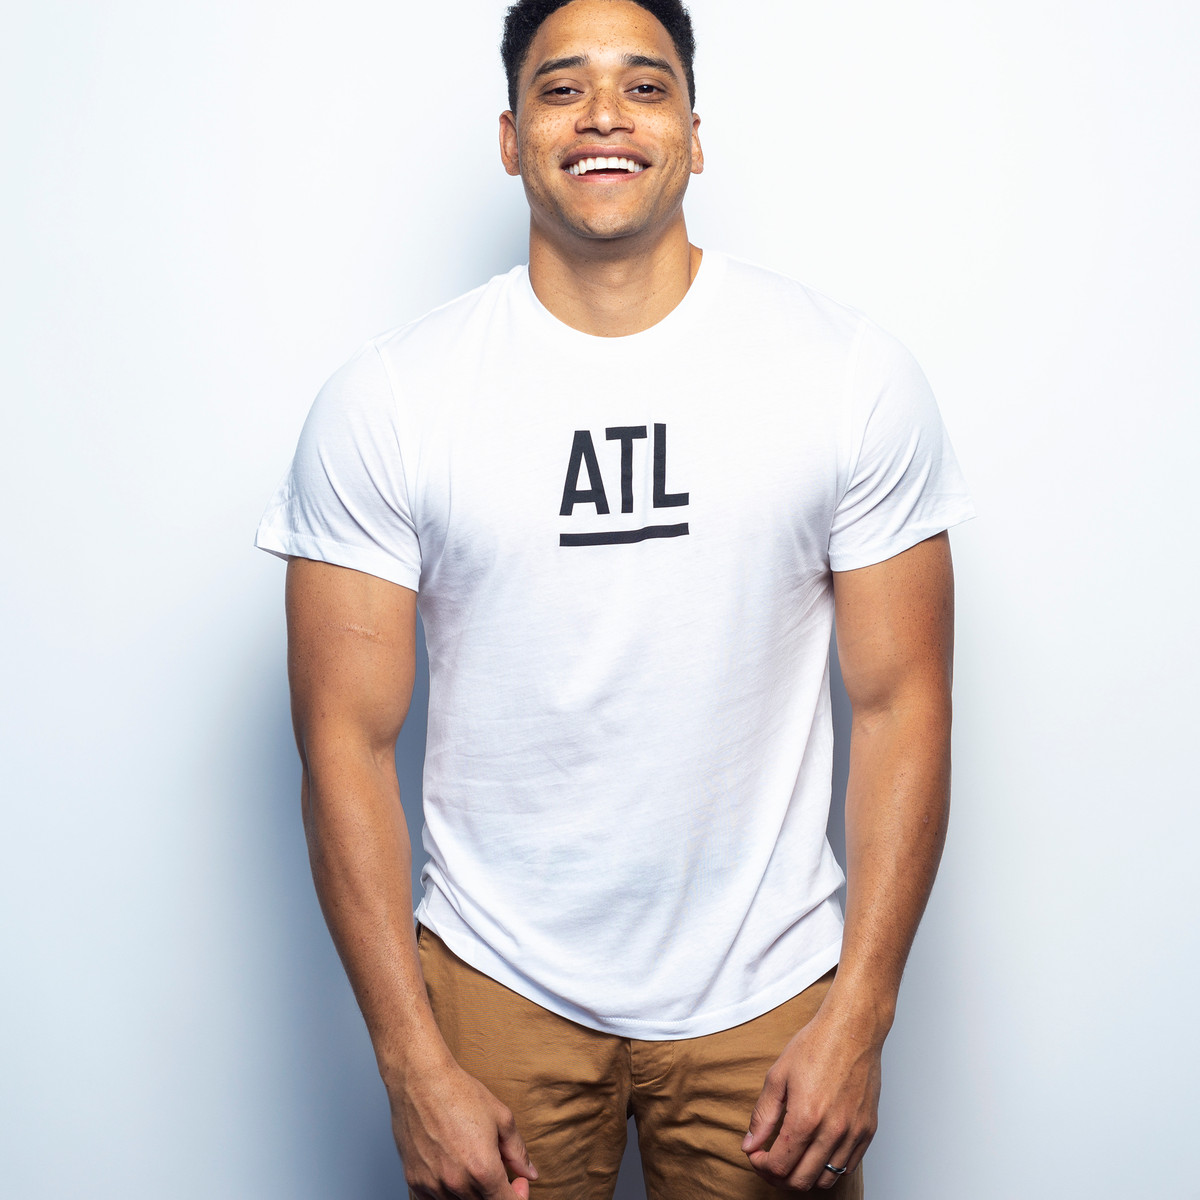 A man smiles at the camera. He is wearing a white t-shirt with black letters which read: ATL.